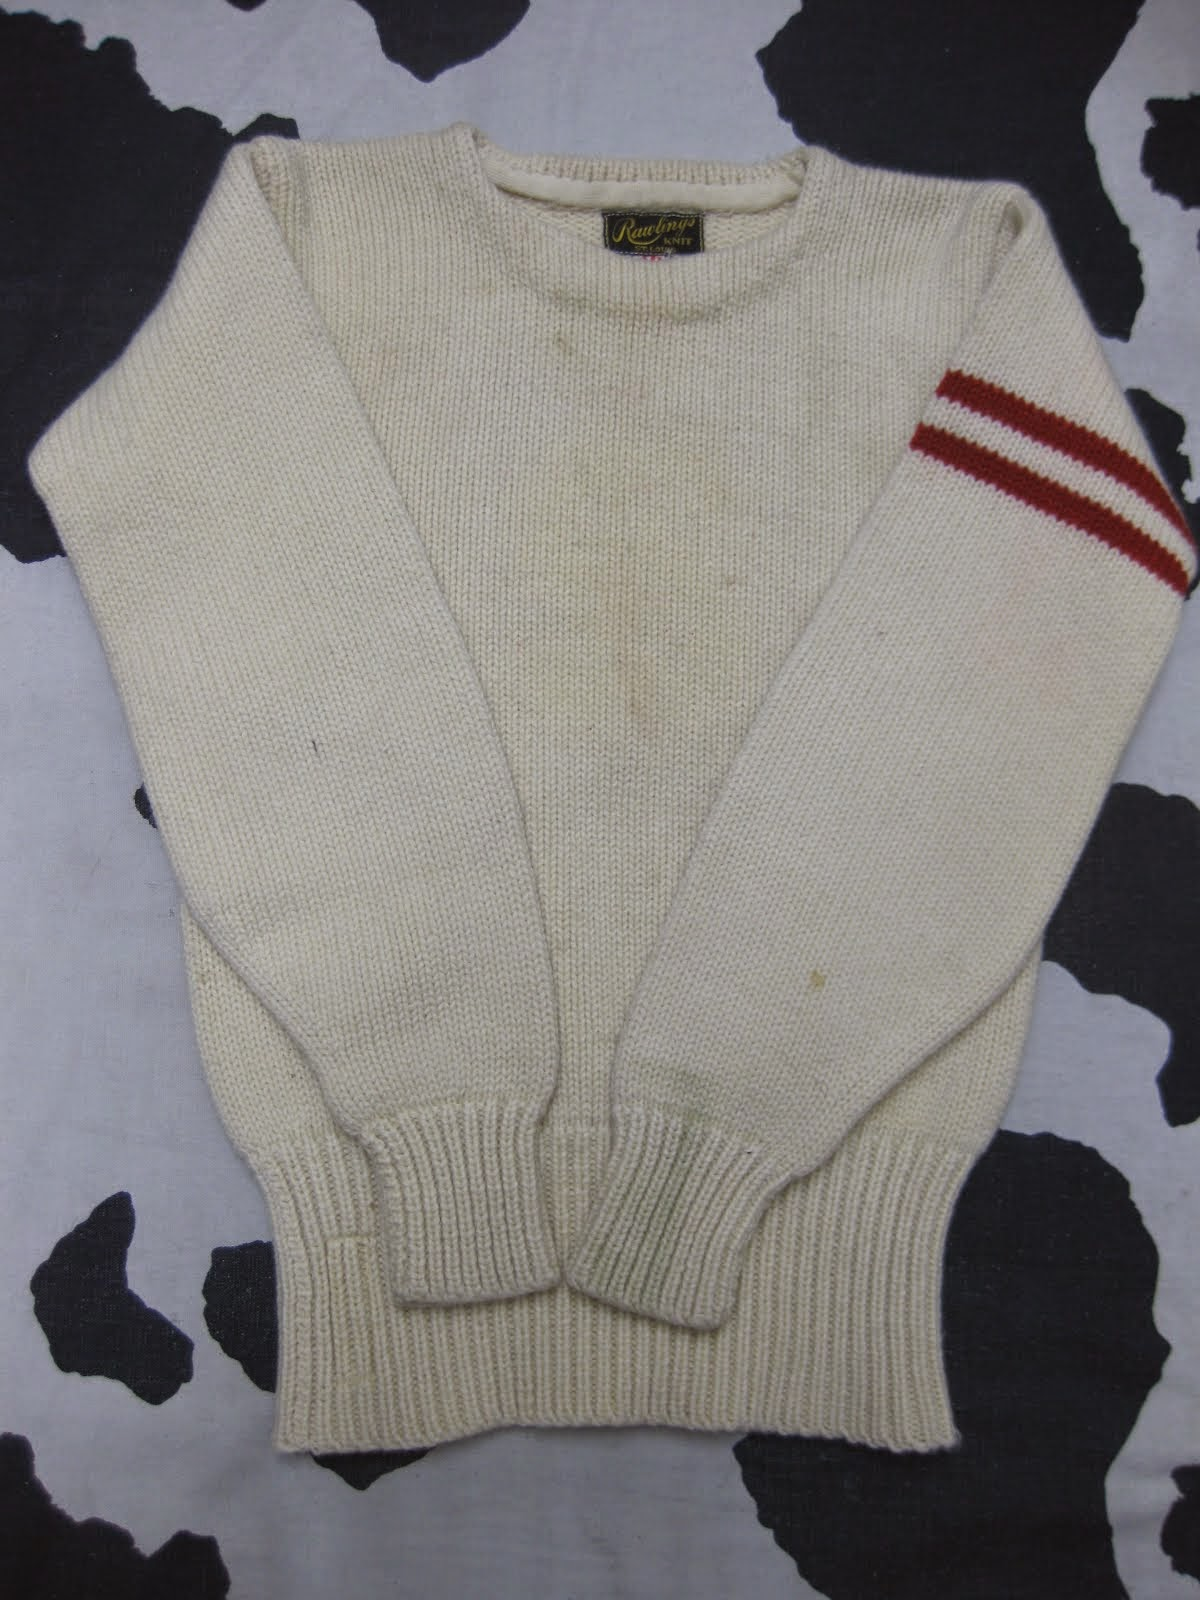 40's RAWLINGS               HEAVY KNIT